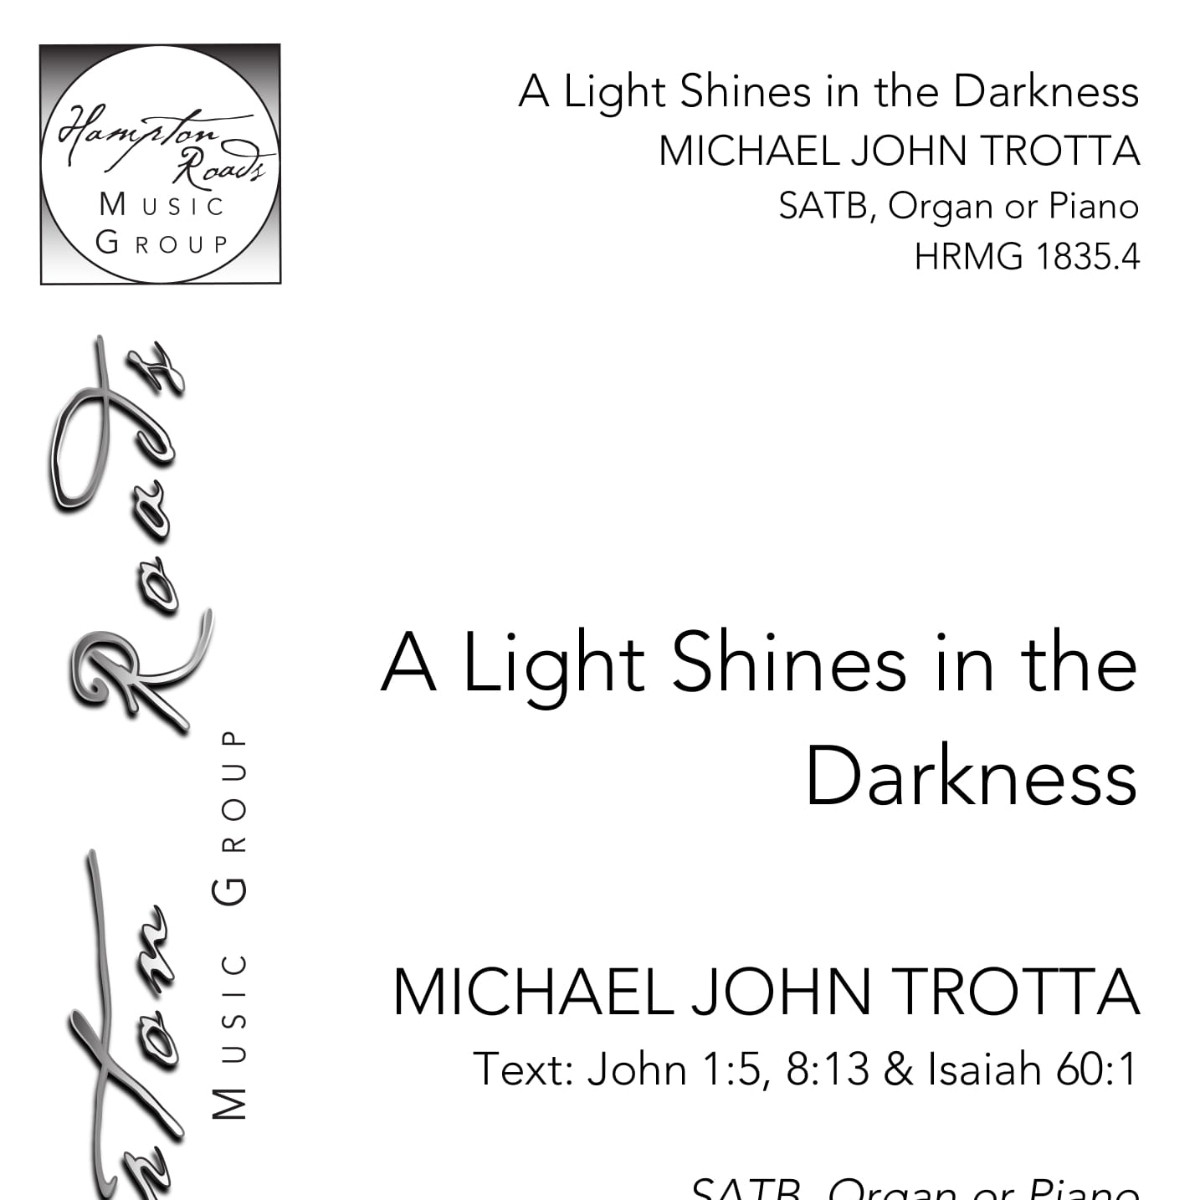 Piano Sheet Music For Shenandoah: A Light Shines In The Darkness, SATB Organ Or Piano